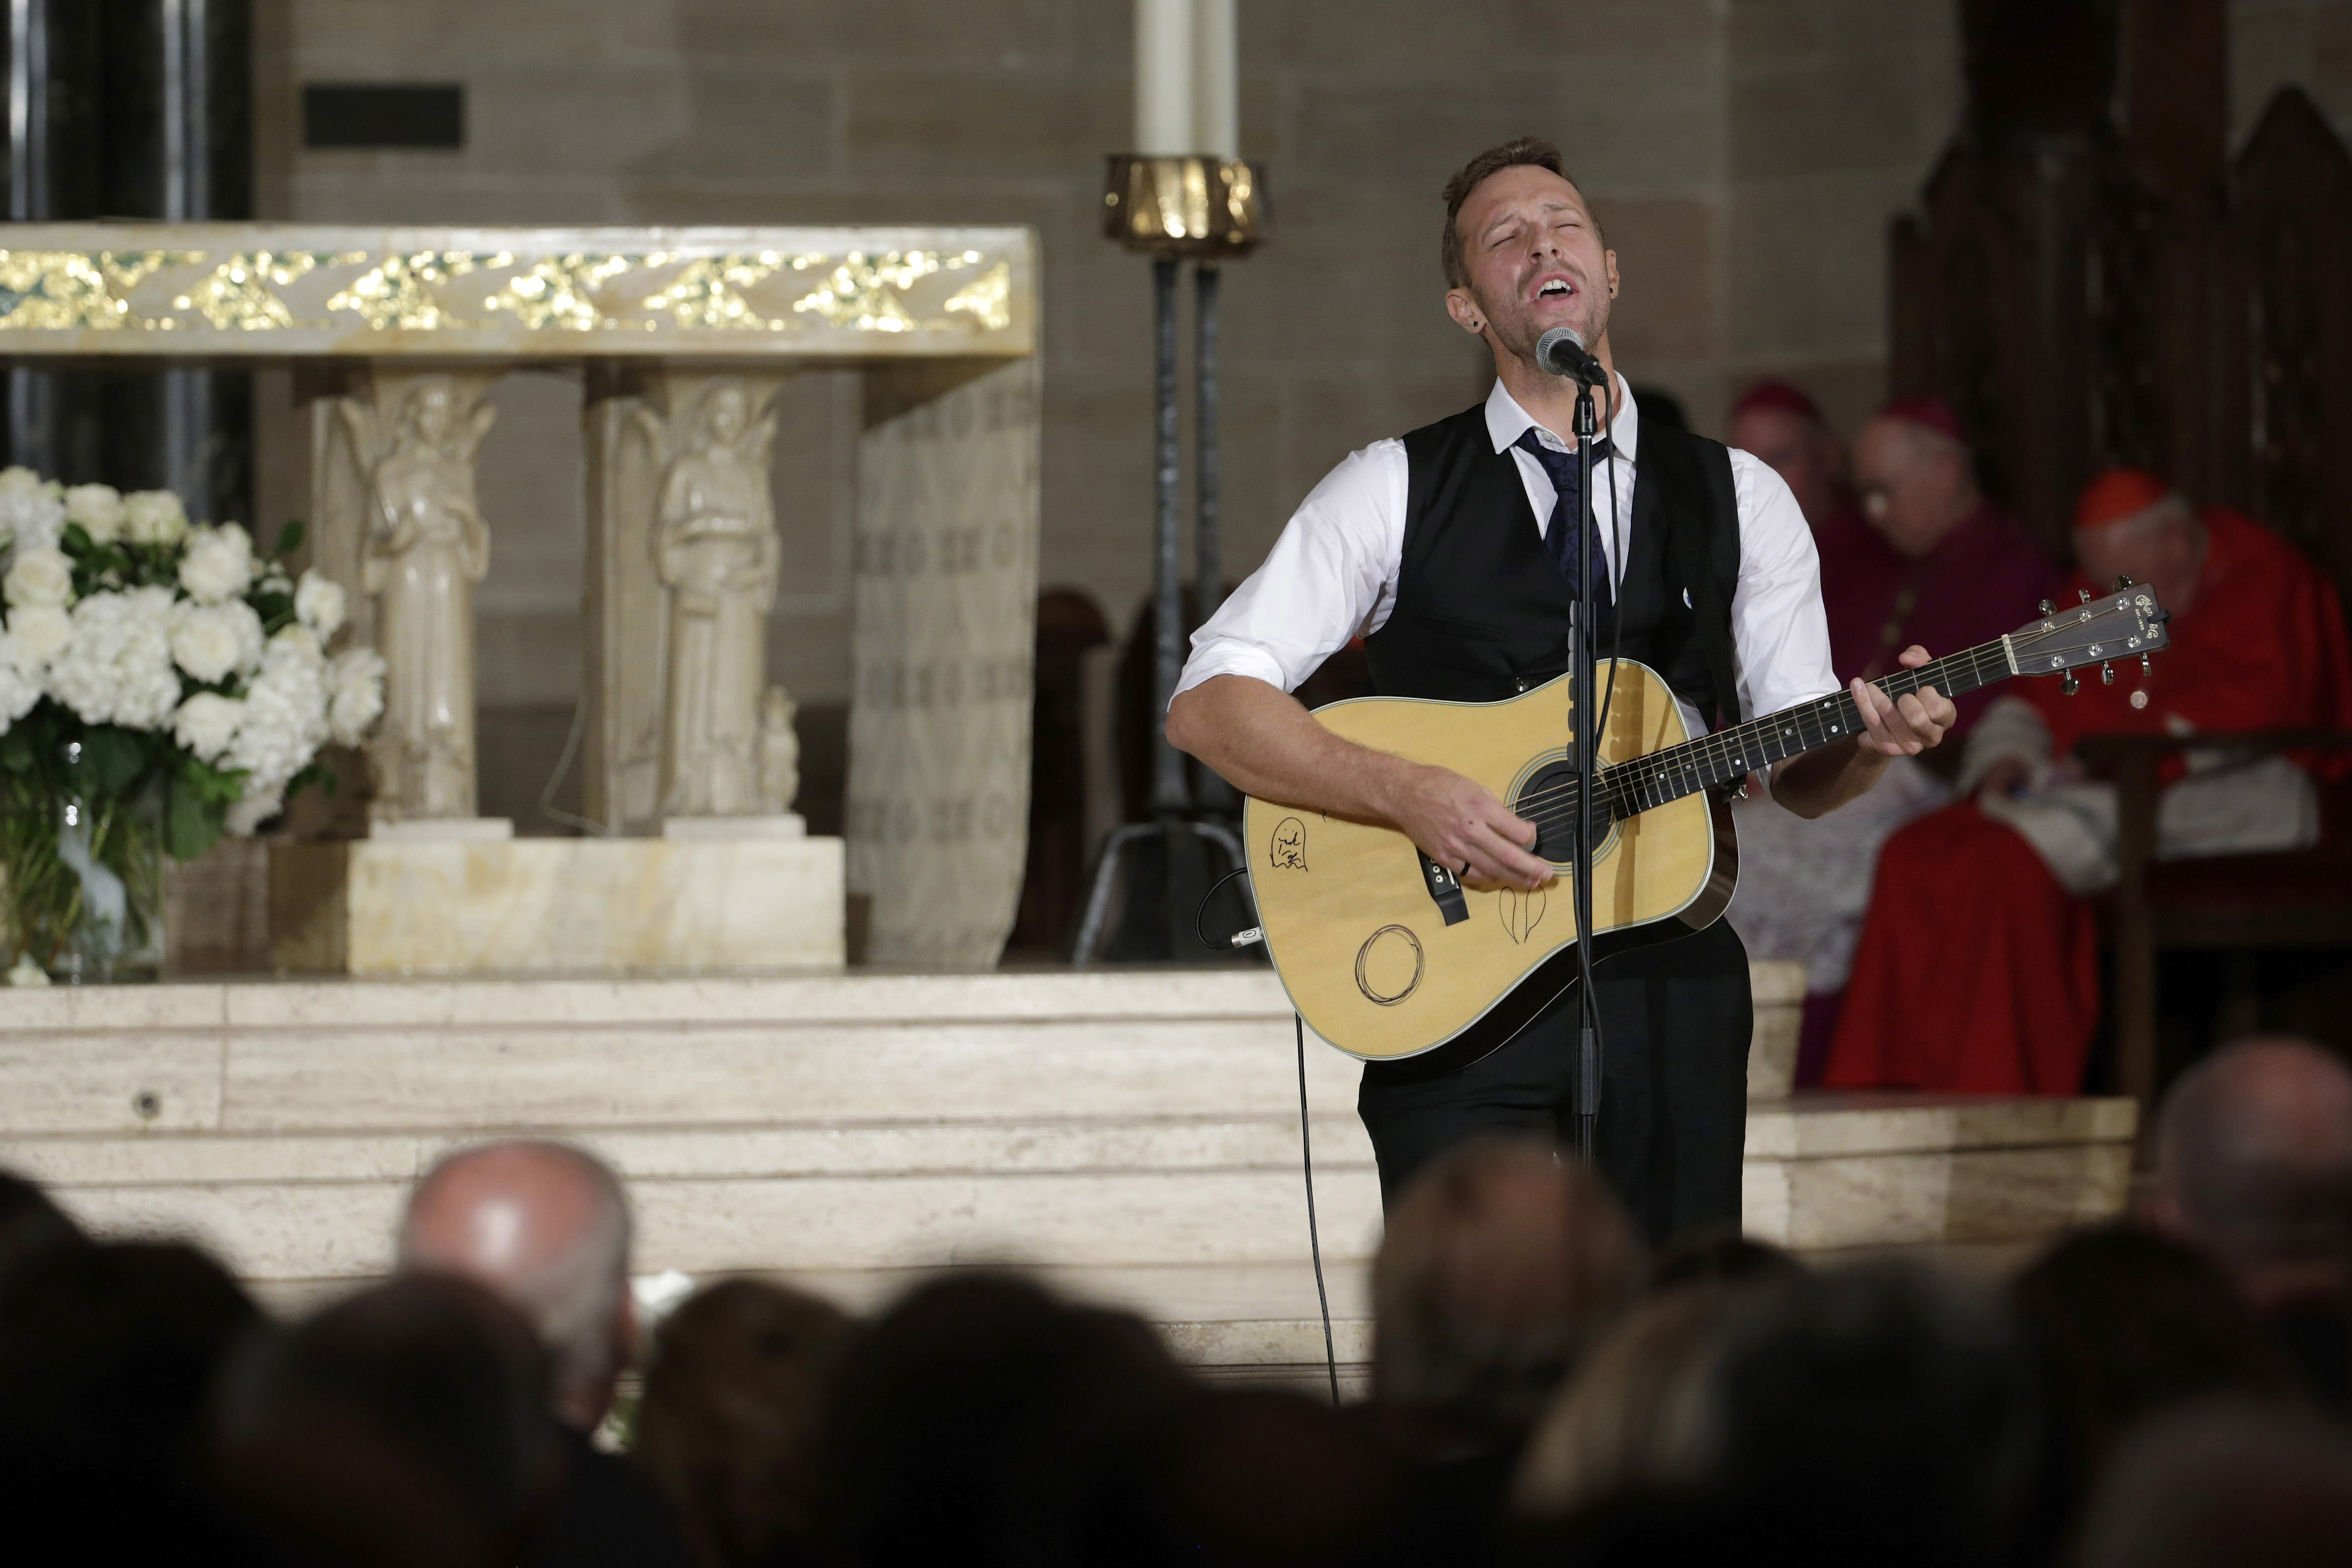 Chris Martin on the group Coldplay performs  Til Kingdom Comes  during funeral services for Vice President Joe Biden's son, former Delaware Attorney General Beau Biden, at St. Anthony of Padua Church in Wilmington, Del., on June 6, 2015.